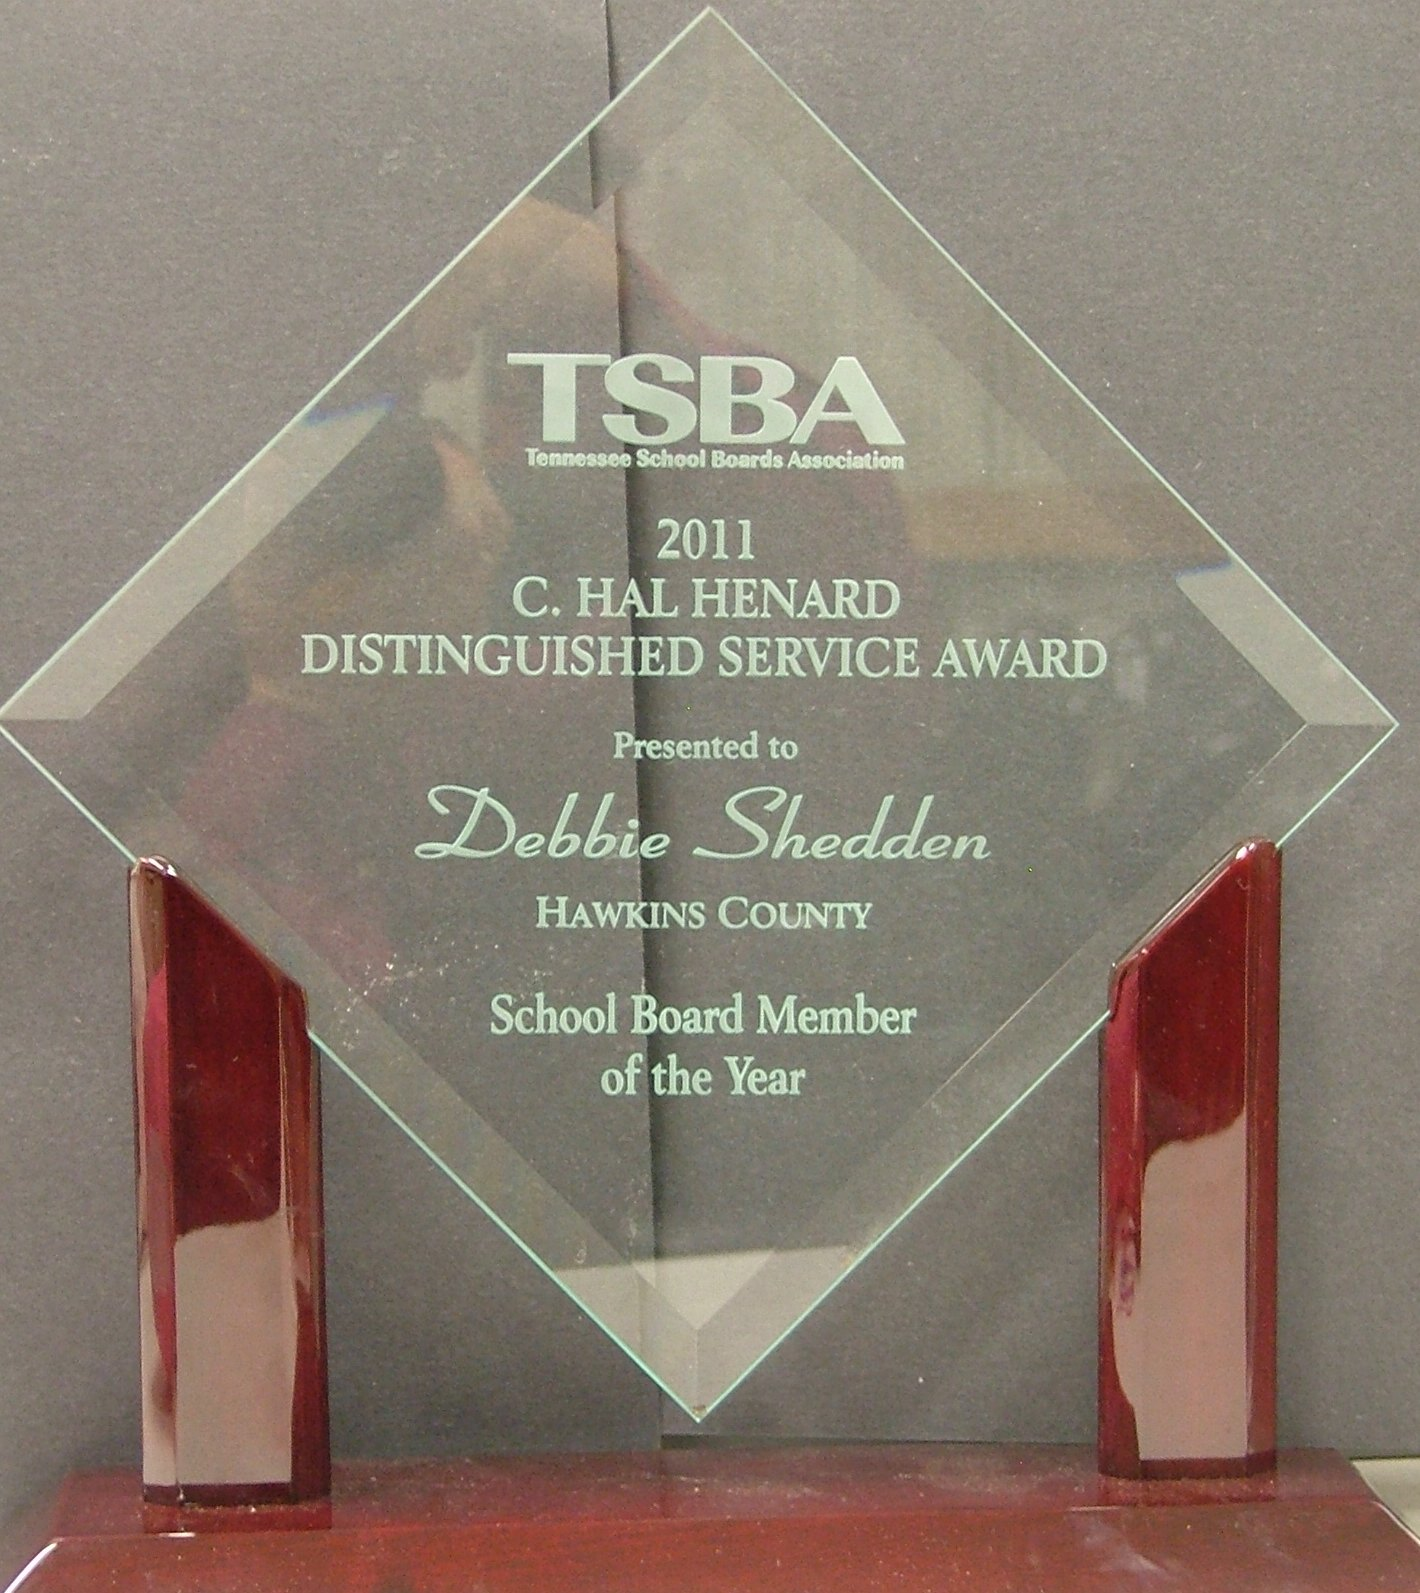 Debbie Shedden received the TSBA C.Hal Henard Distinguished Service Awar